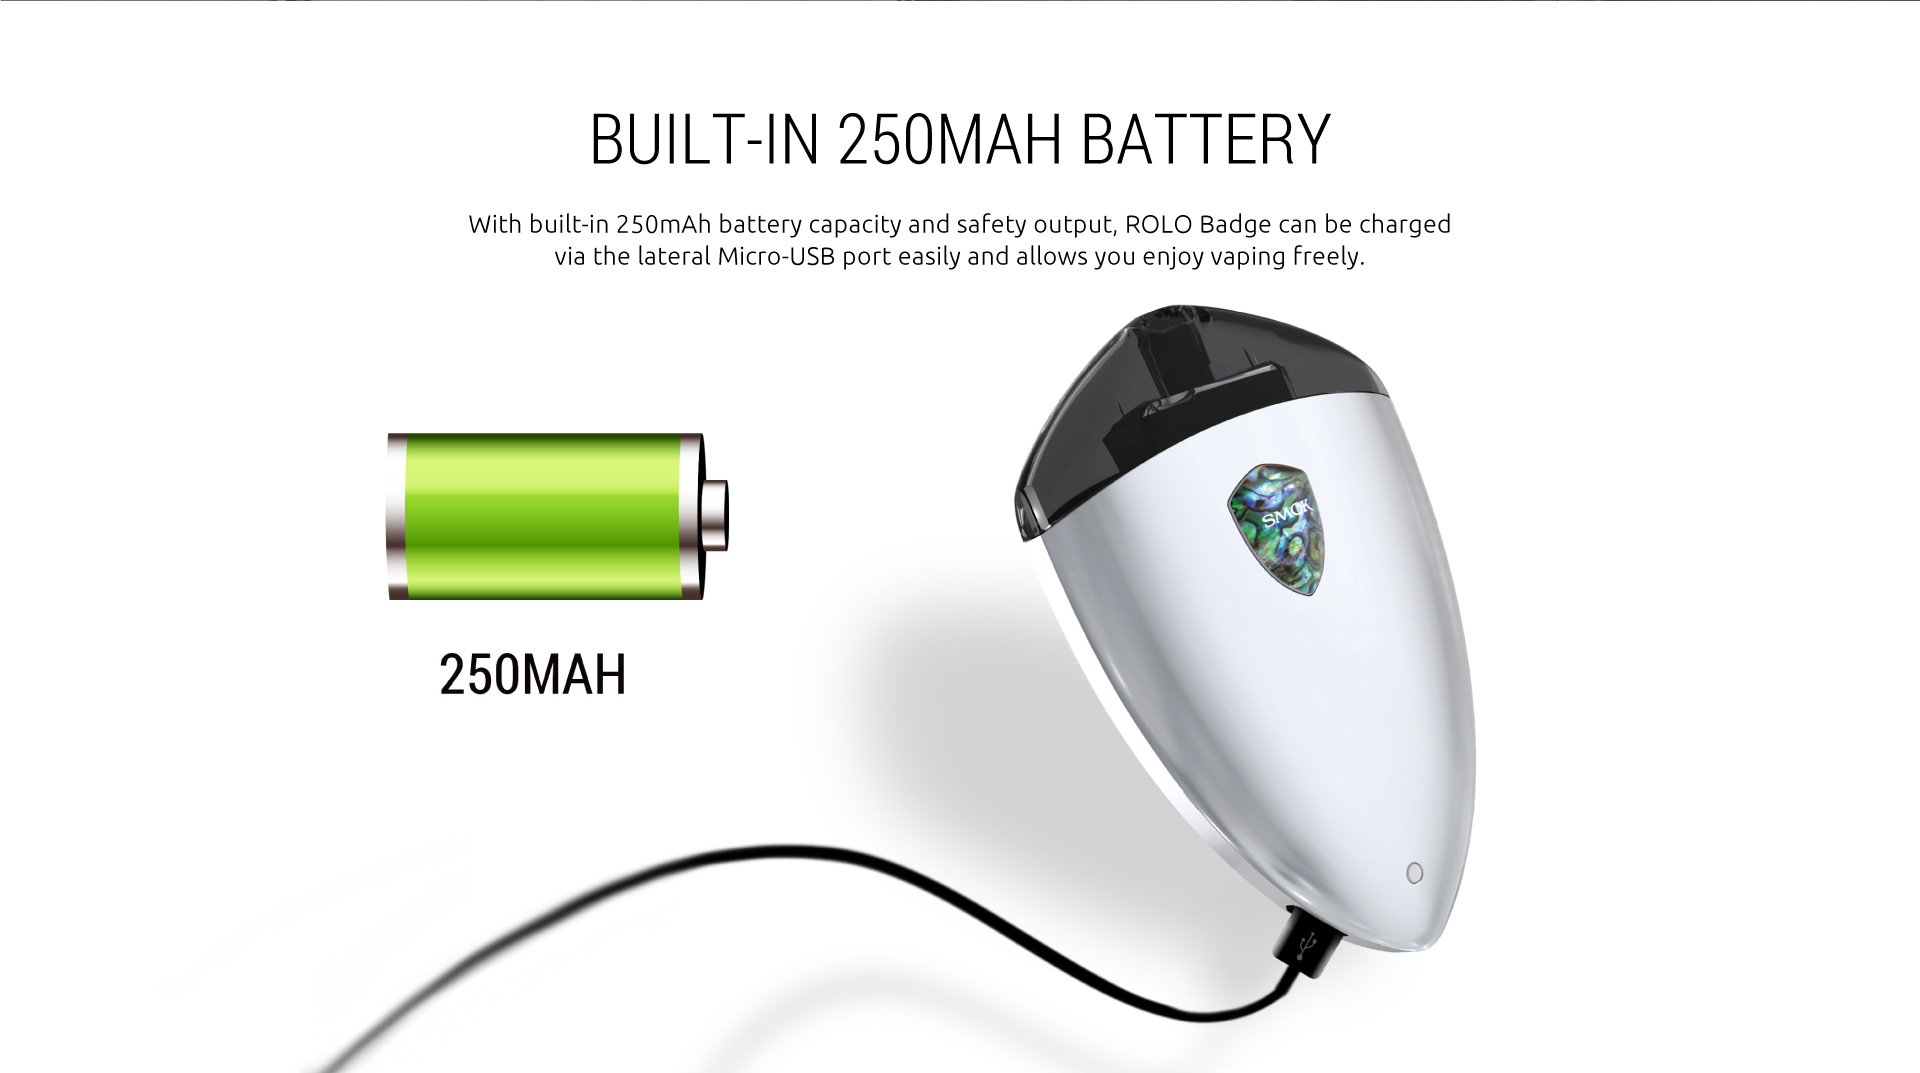 SMOK Rolo Badge built-in battery